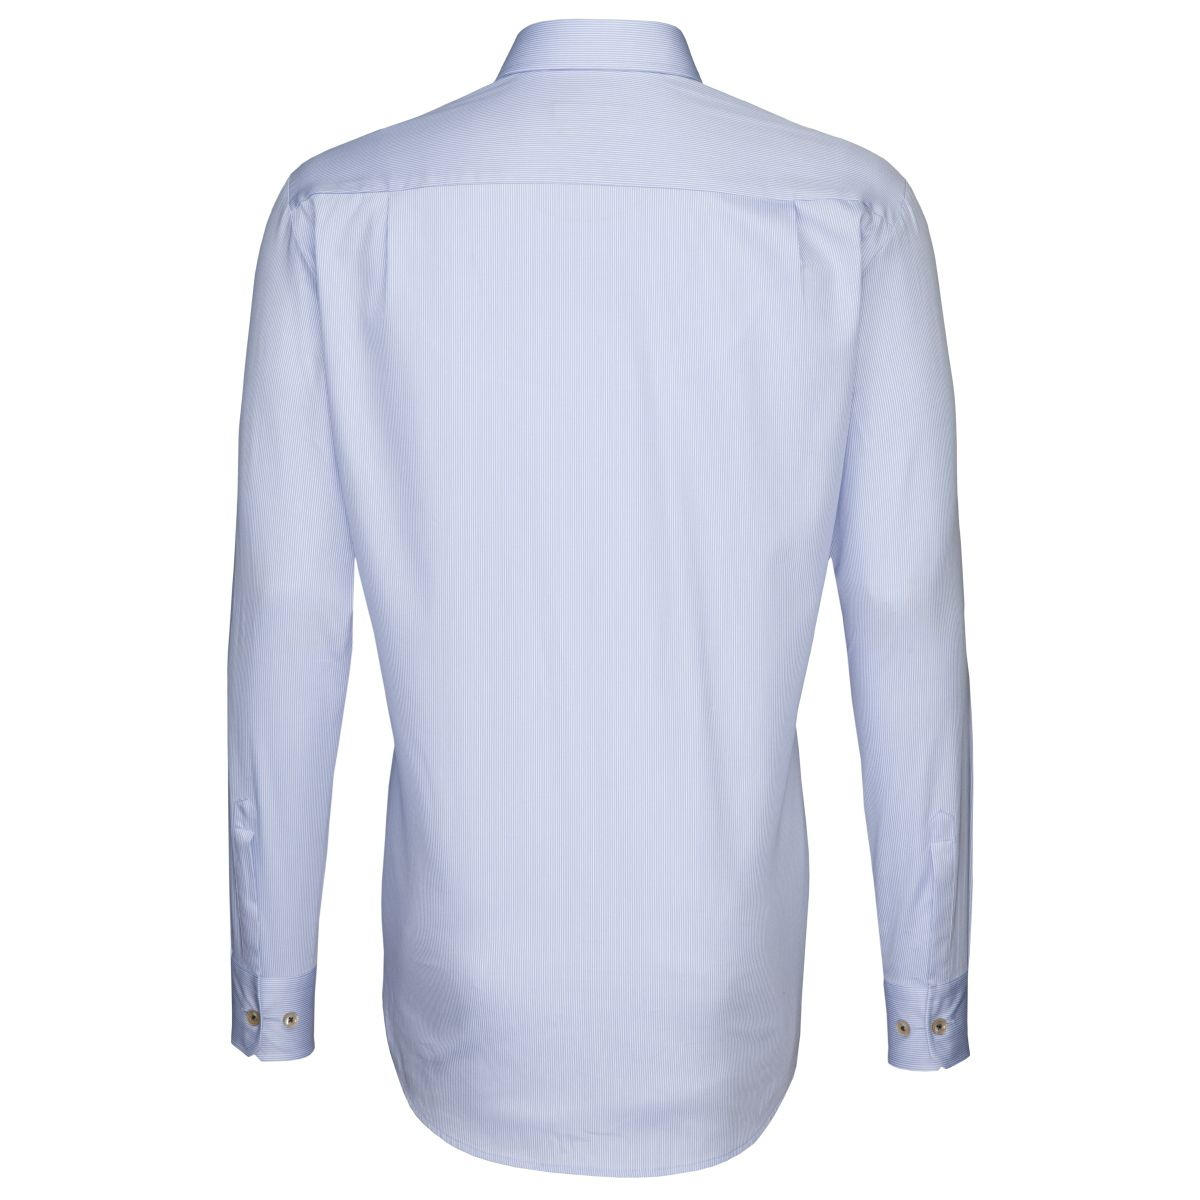 Chemise Uno rayures blanches et bleues